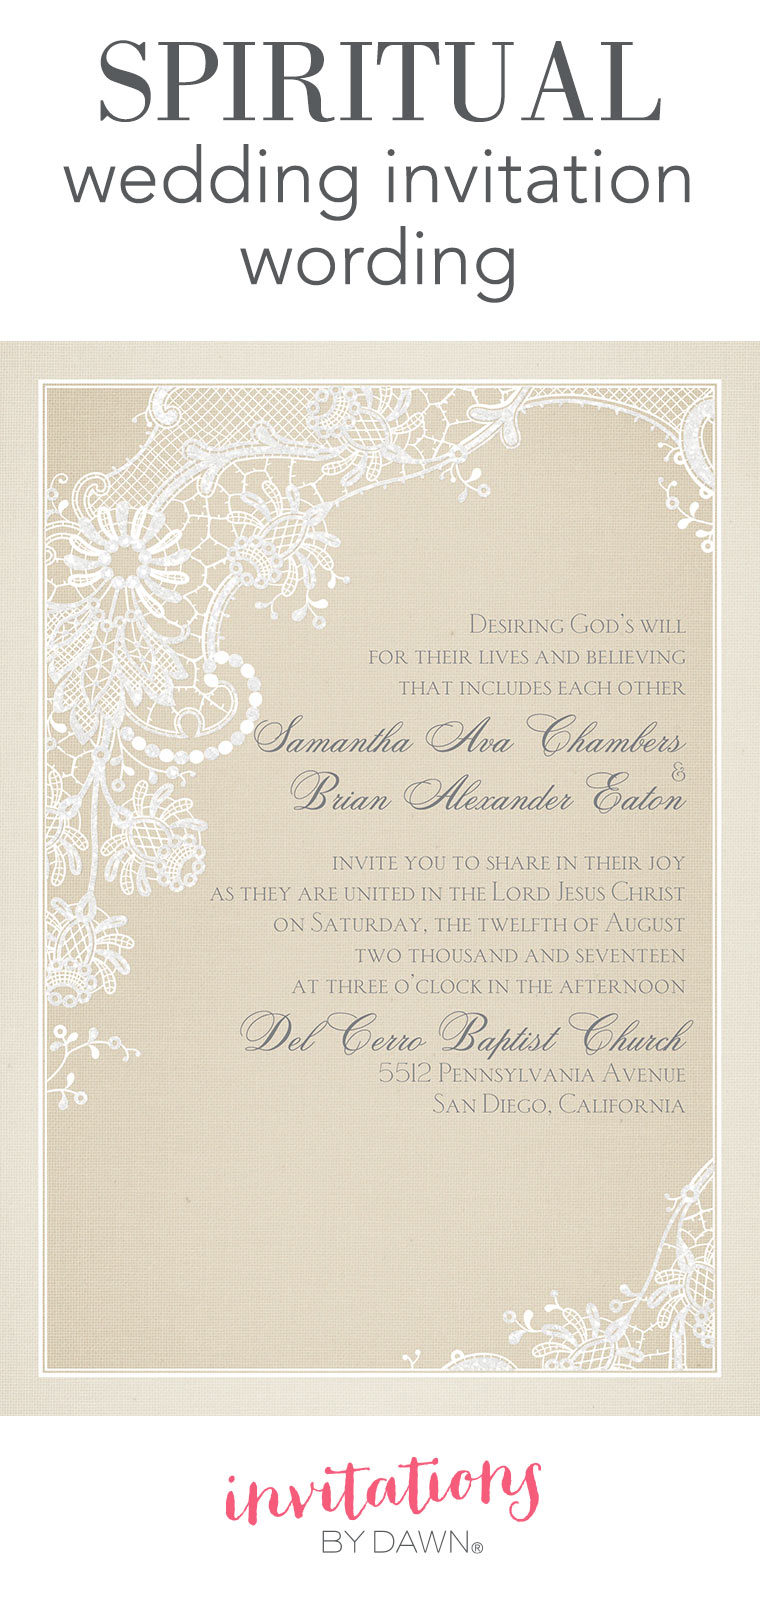 spiritual wedding invitation wording | invitations by dawn, Wedding invitations